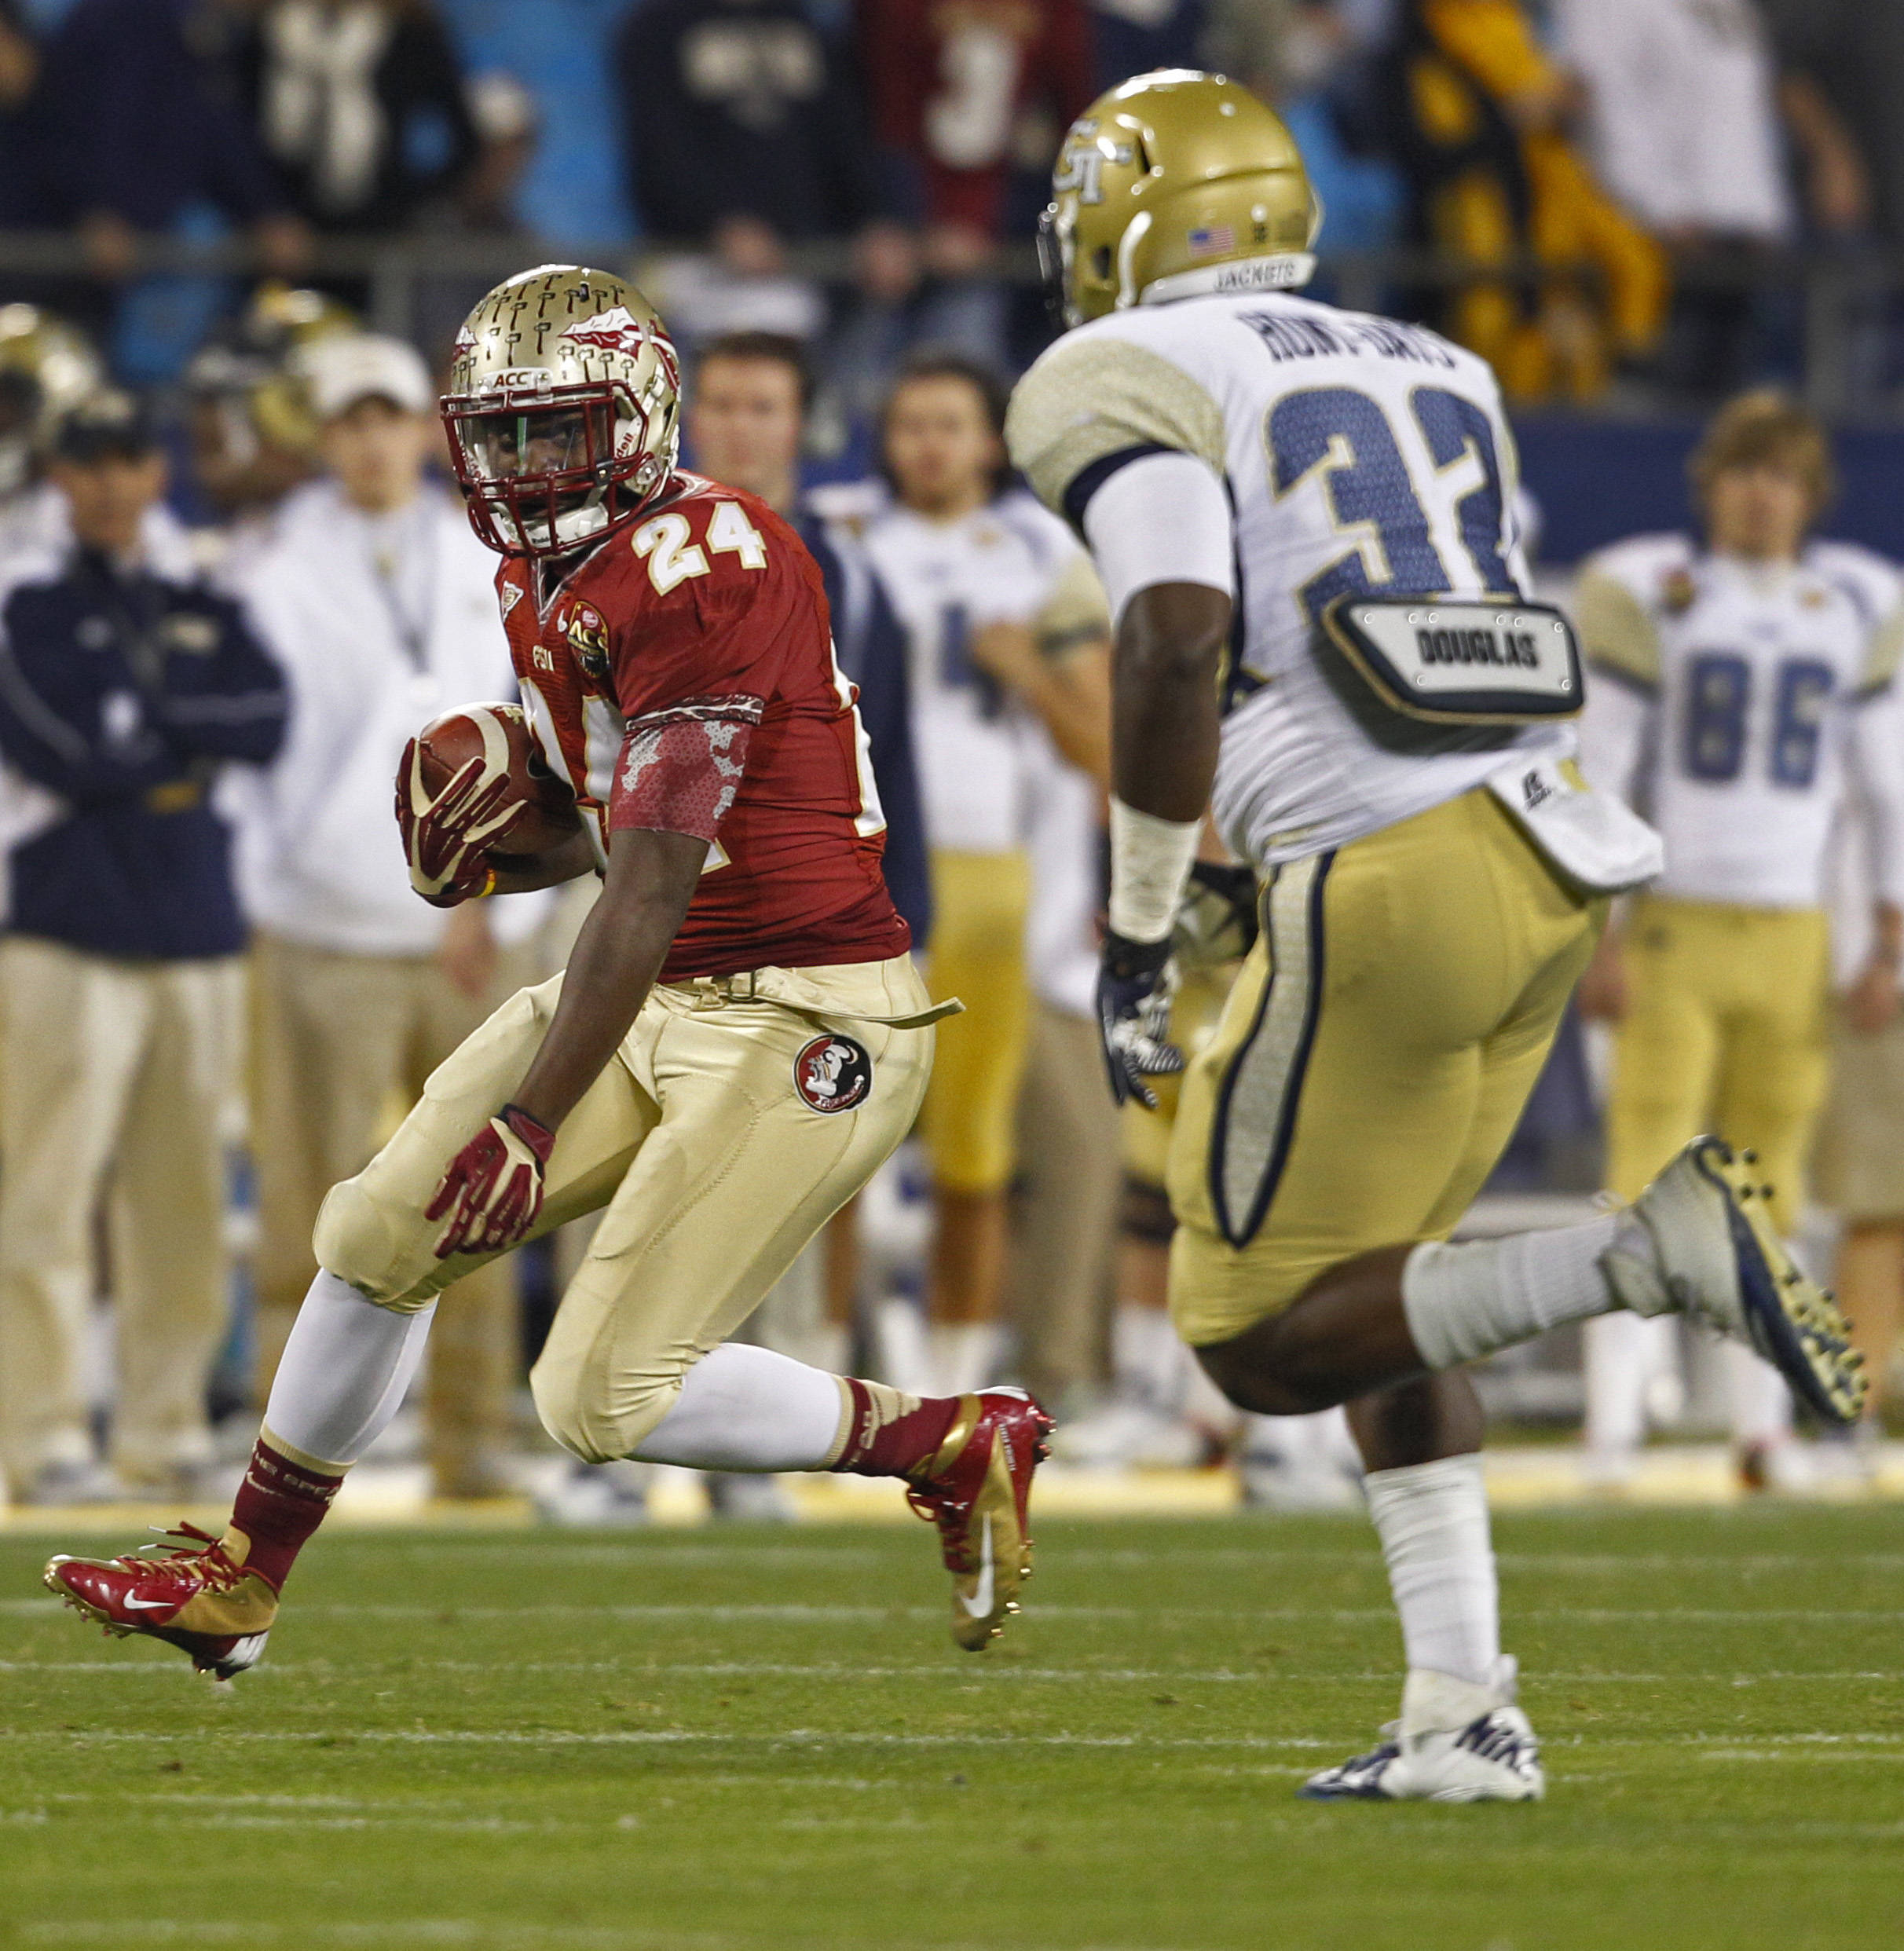 Florida State's Lonnie Pryor (24) runs past Georgia Tech's Jabari Hunt-Days (32) during the first half. (AP Photo/Chuck Burton)